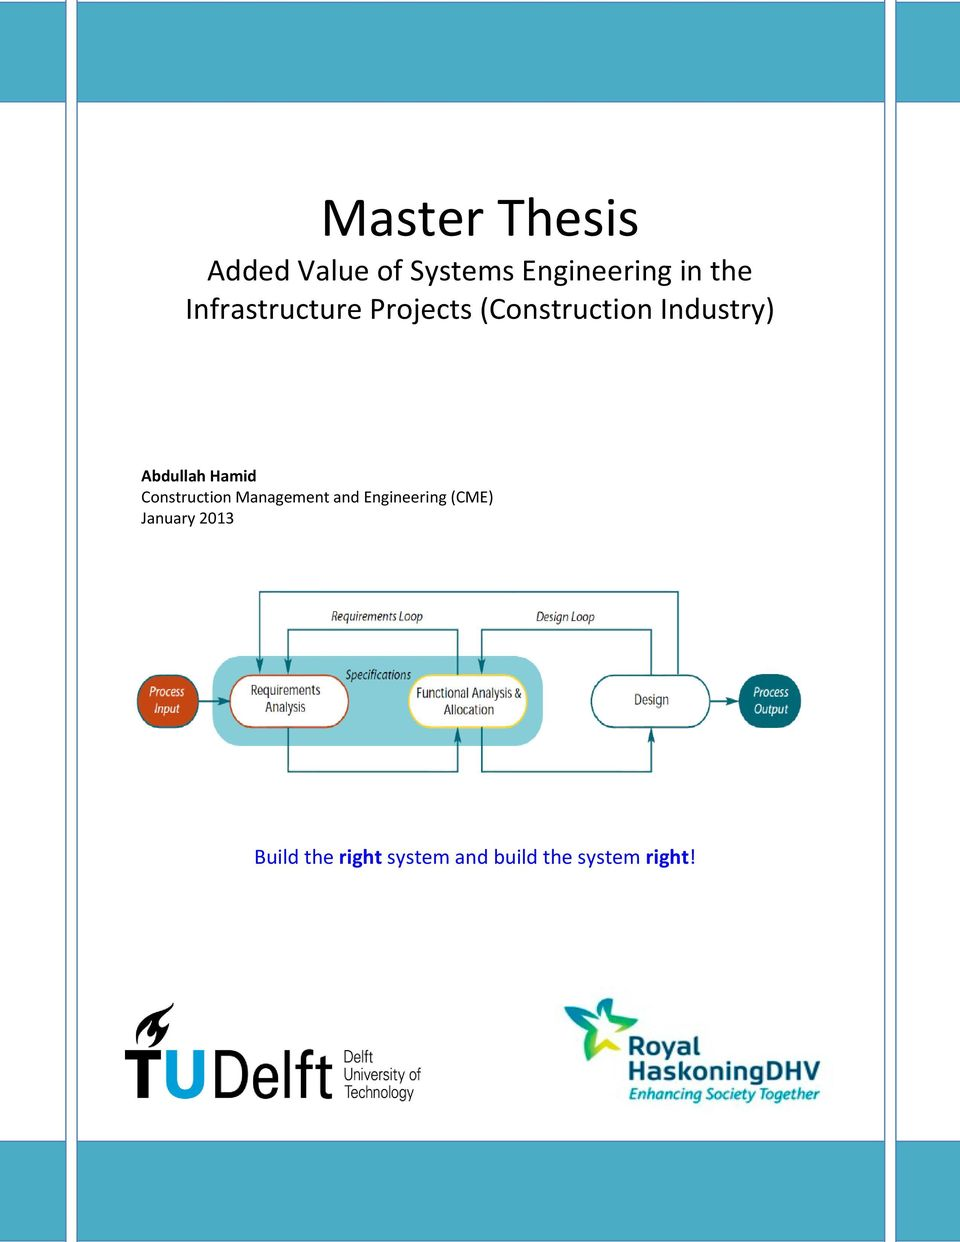 Full master thesis pdf download